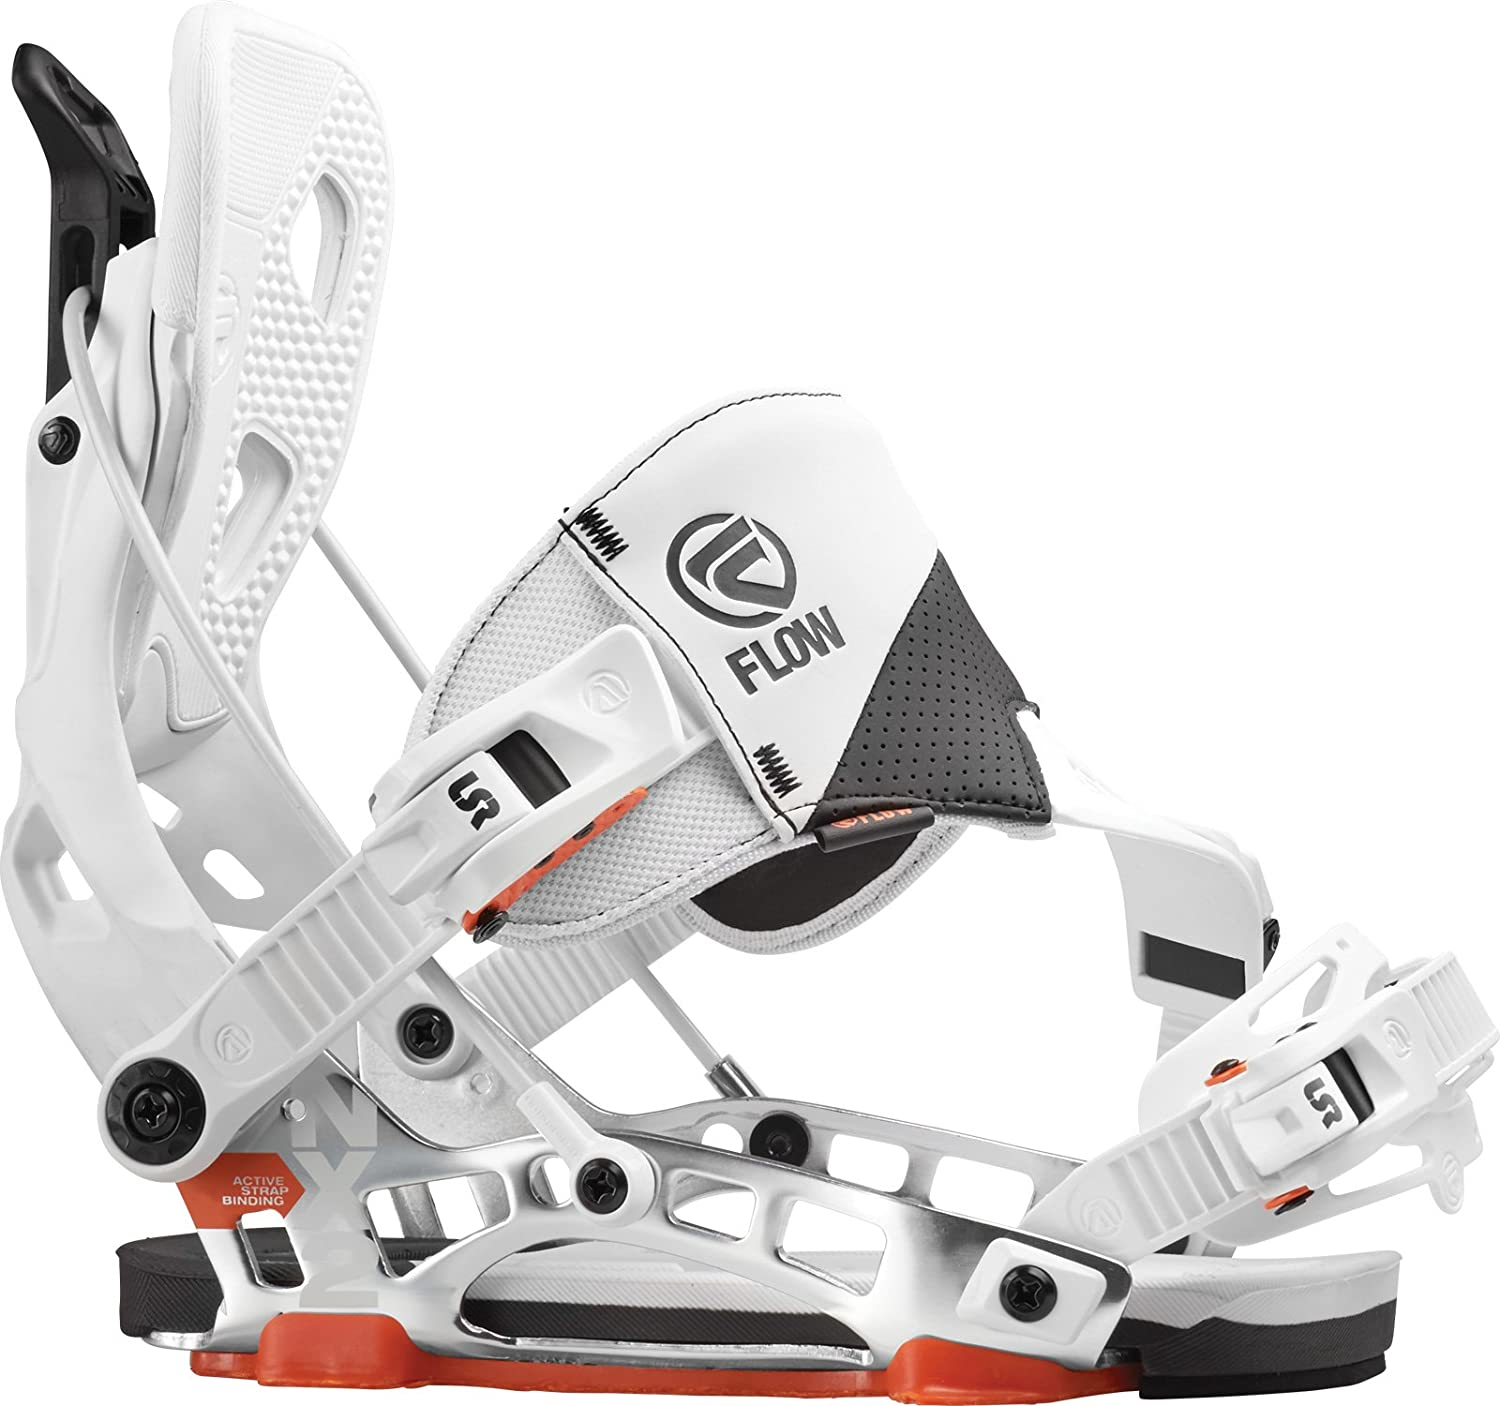 Best Rear Entry Snowboard Bindings 2018-2019 Season